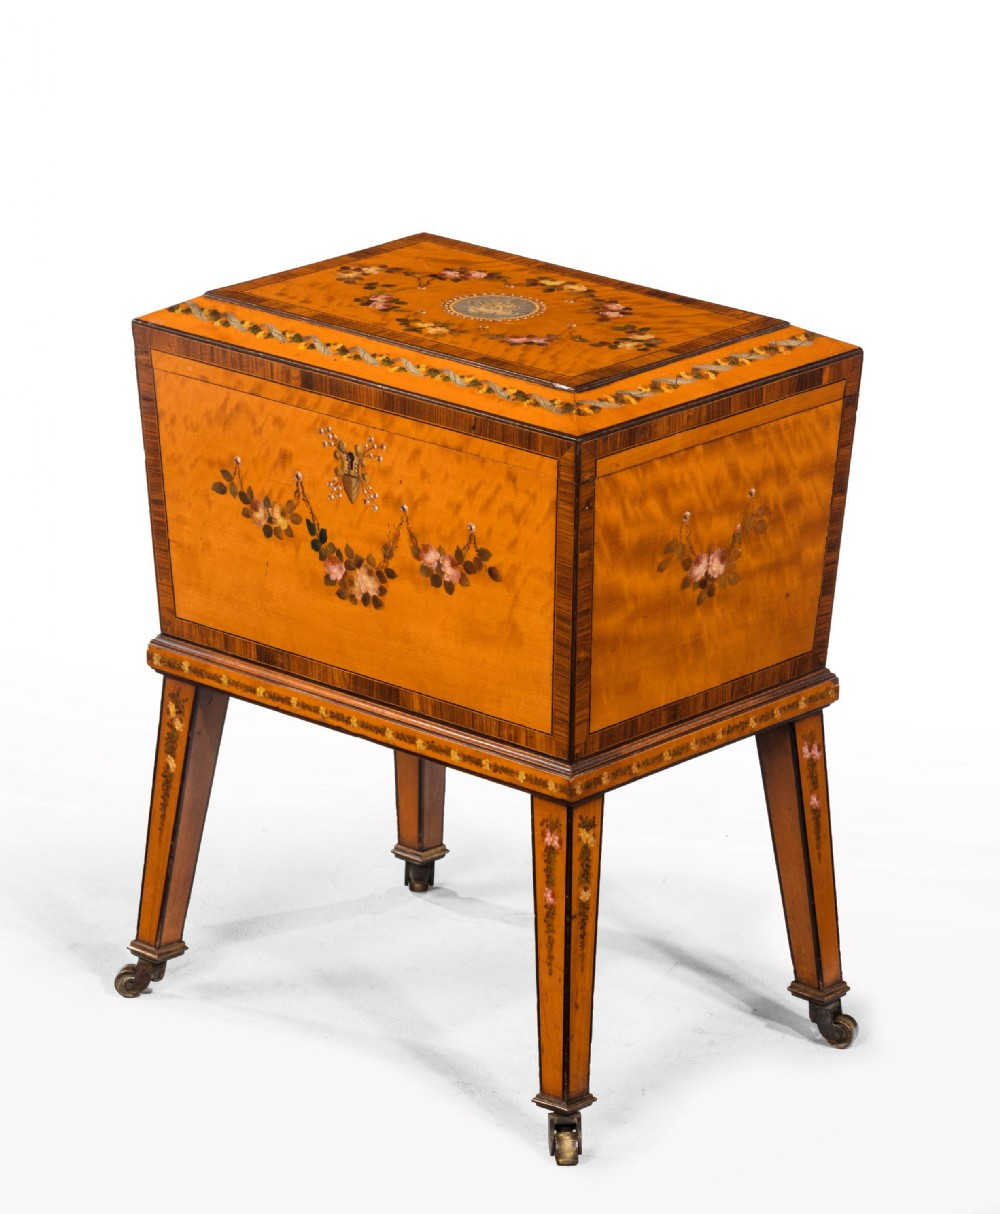 late 19th century small satinwood box on a stand